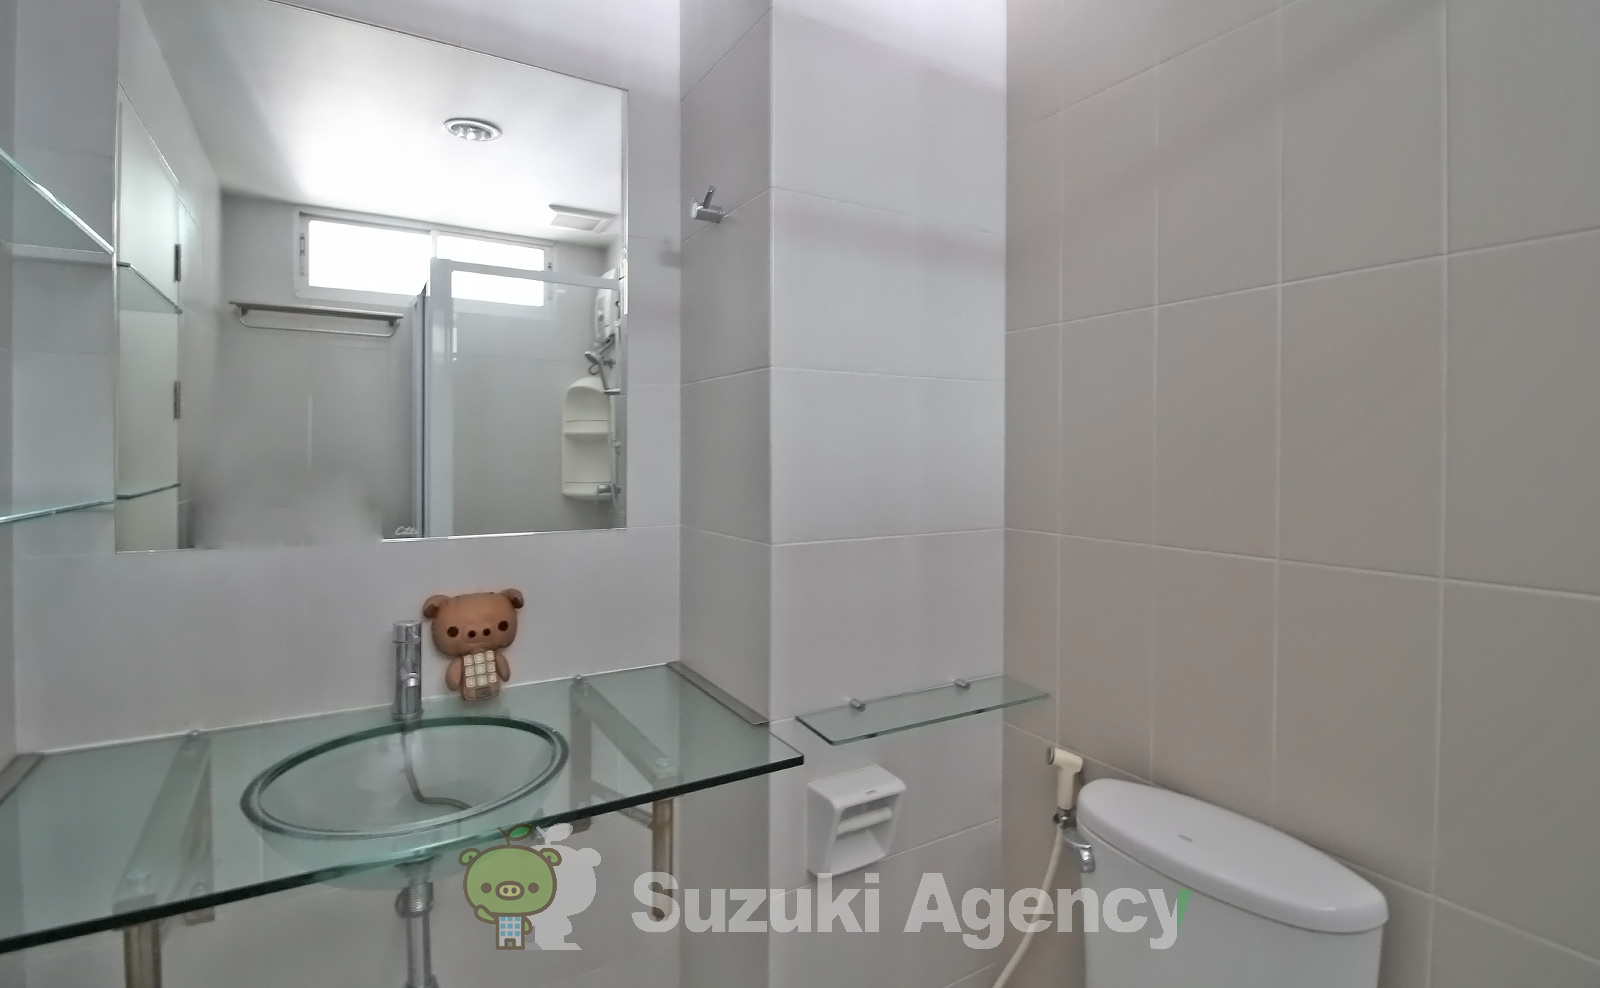 Condo One X Sukhumvit 26:1Bed Room Photos No.9